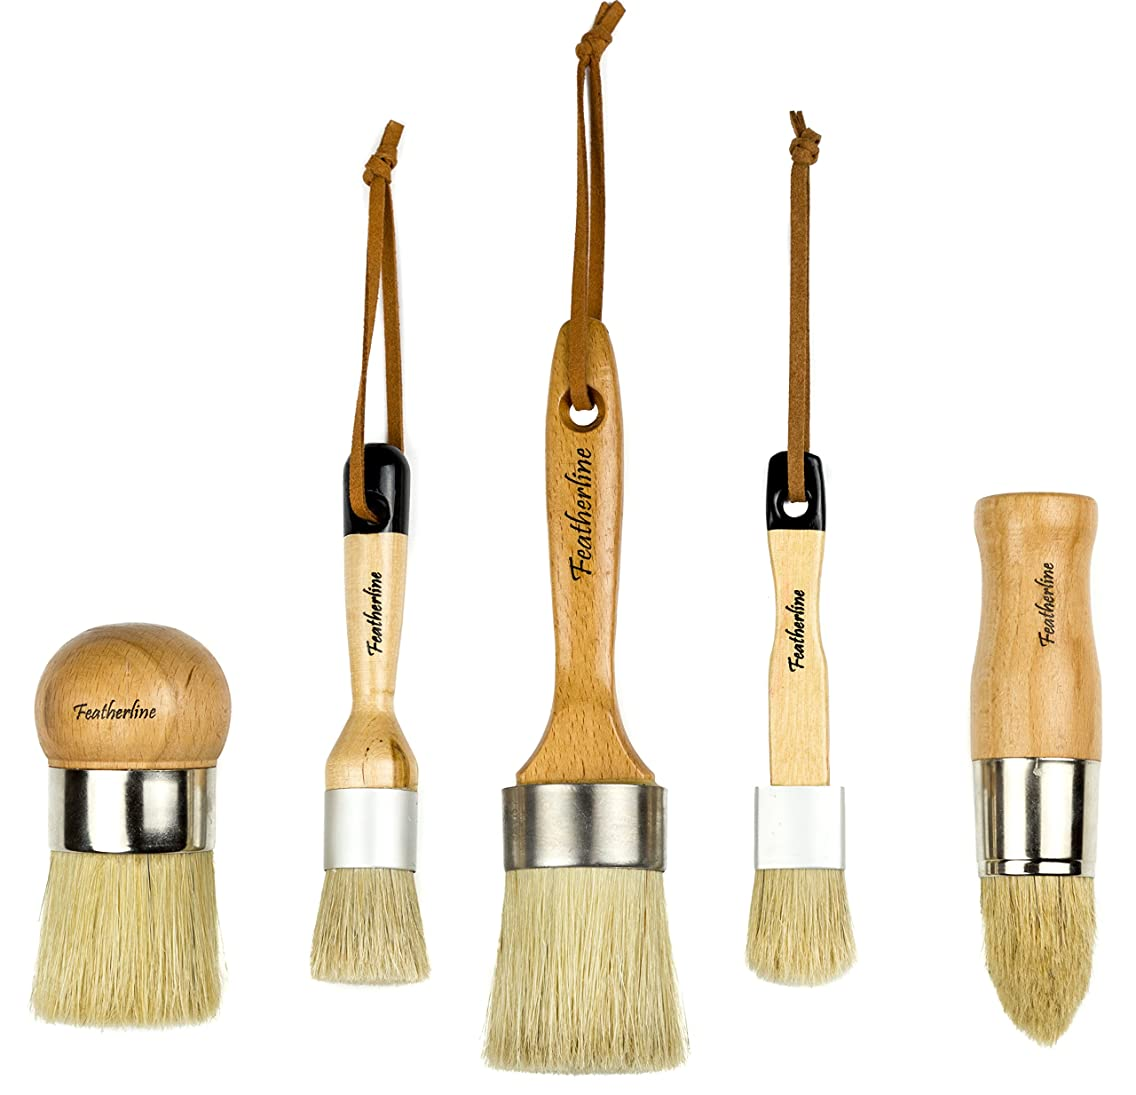 Featherline Series Pro Advanced Chalked Paint & Waxing 5 Brush Set   Top Results for Wax and Painting Projects   Use with All Brands of Chalked Paint